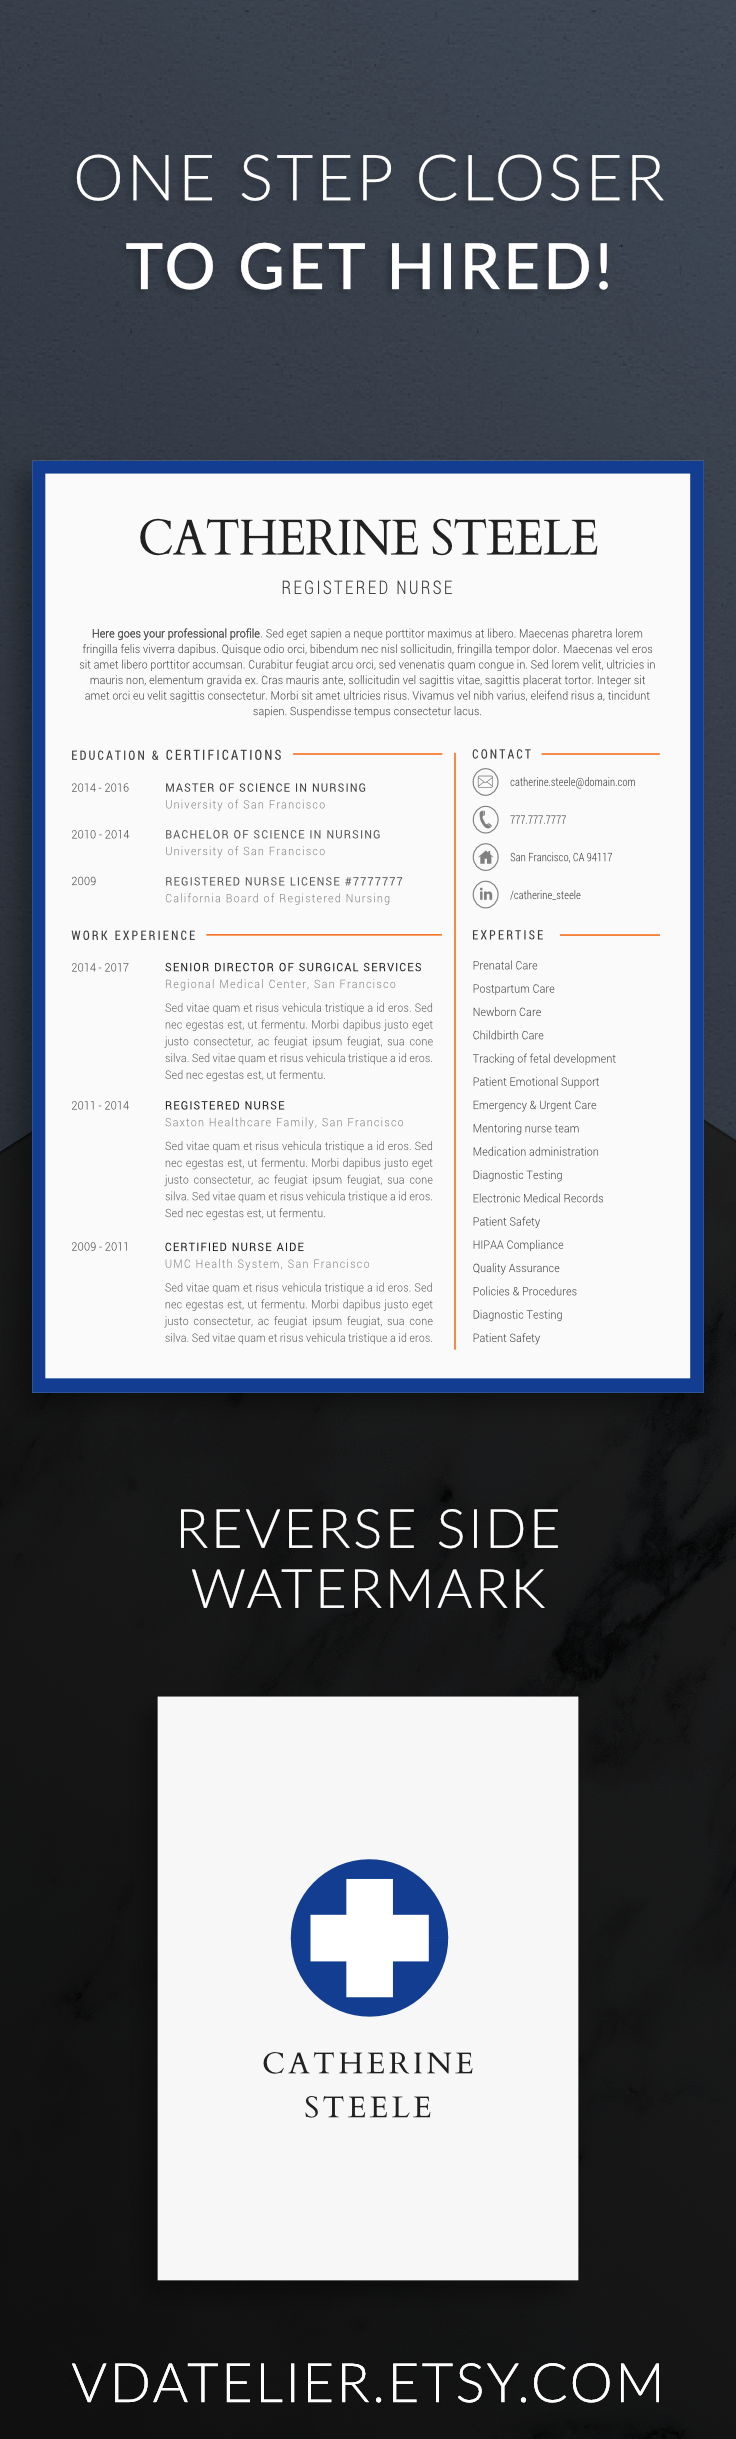 Nurse resume template for modern professionals. Suitable as medical ...